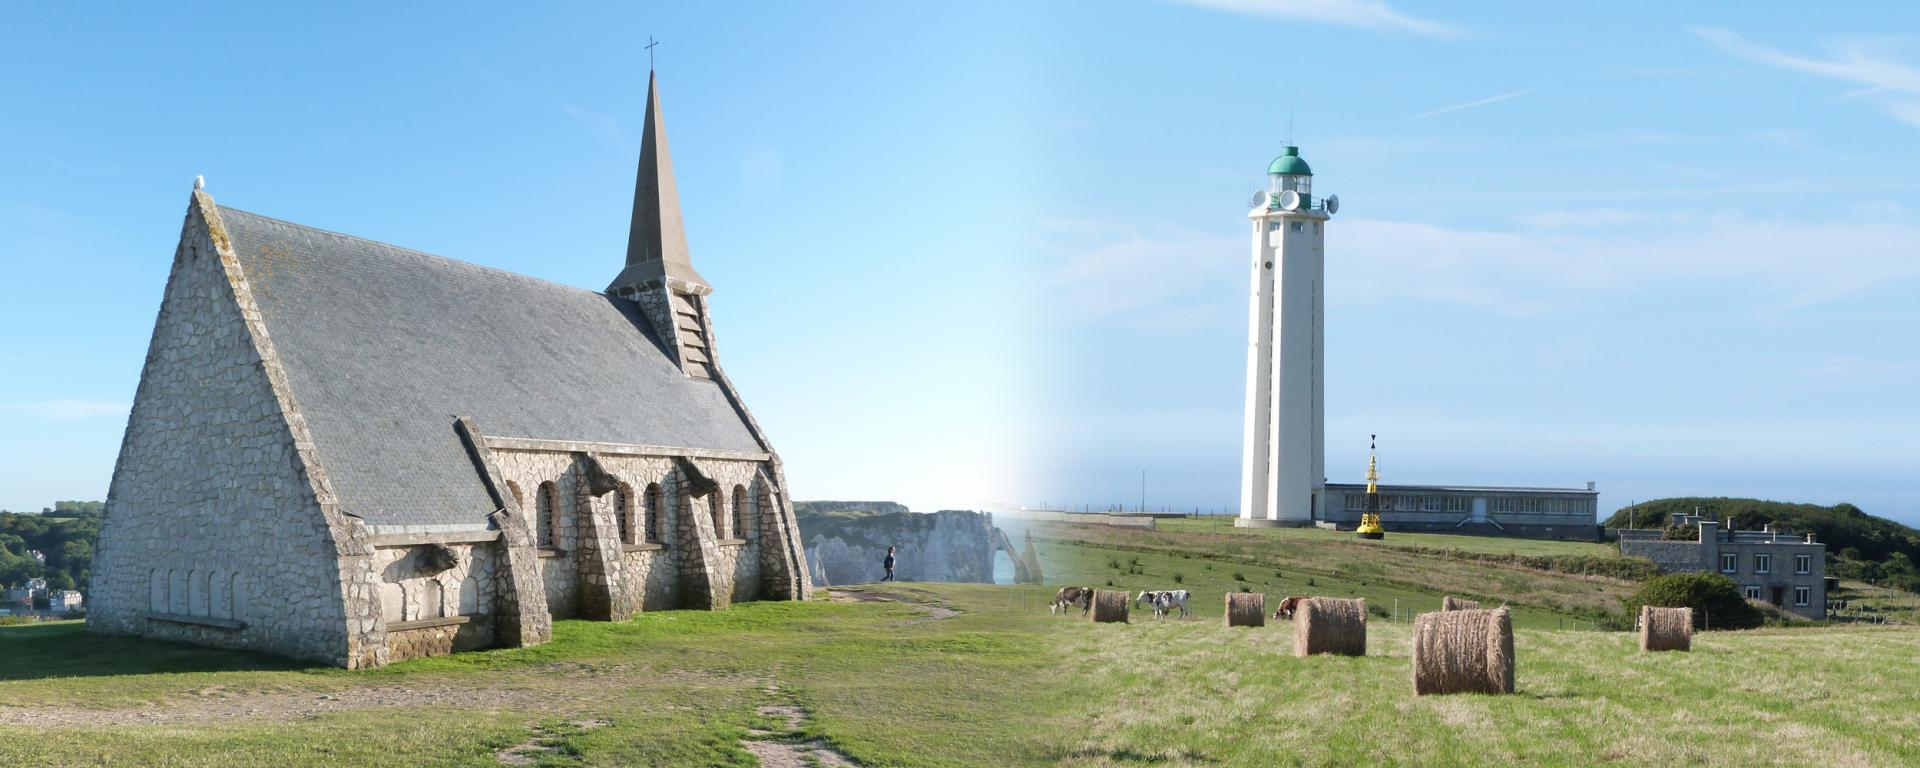 Phare d'Antifer et Chapelle d'Étretat - La Poterie-Cap-d'Antifer [76]